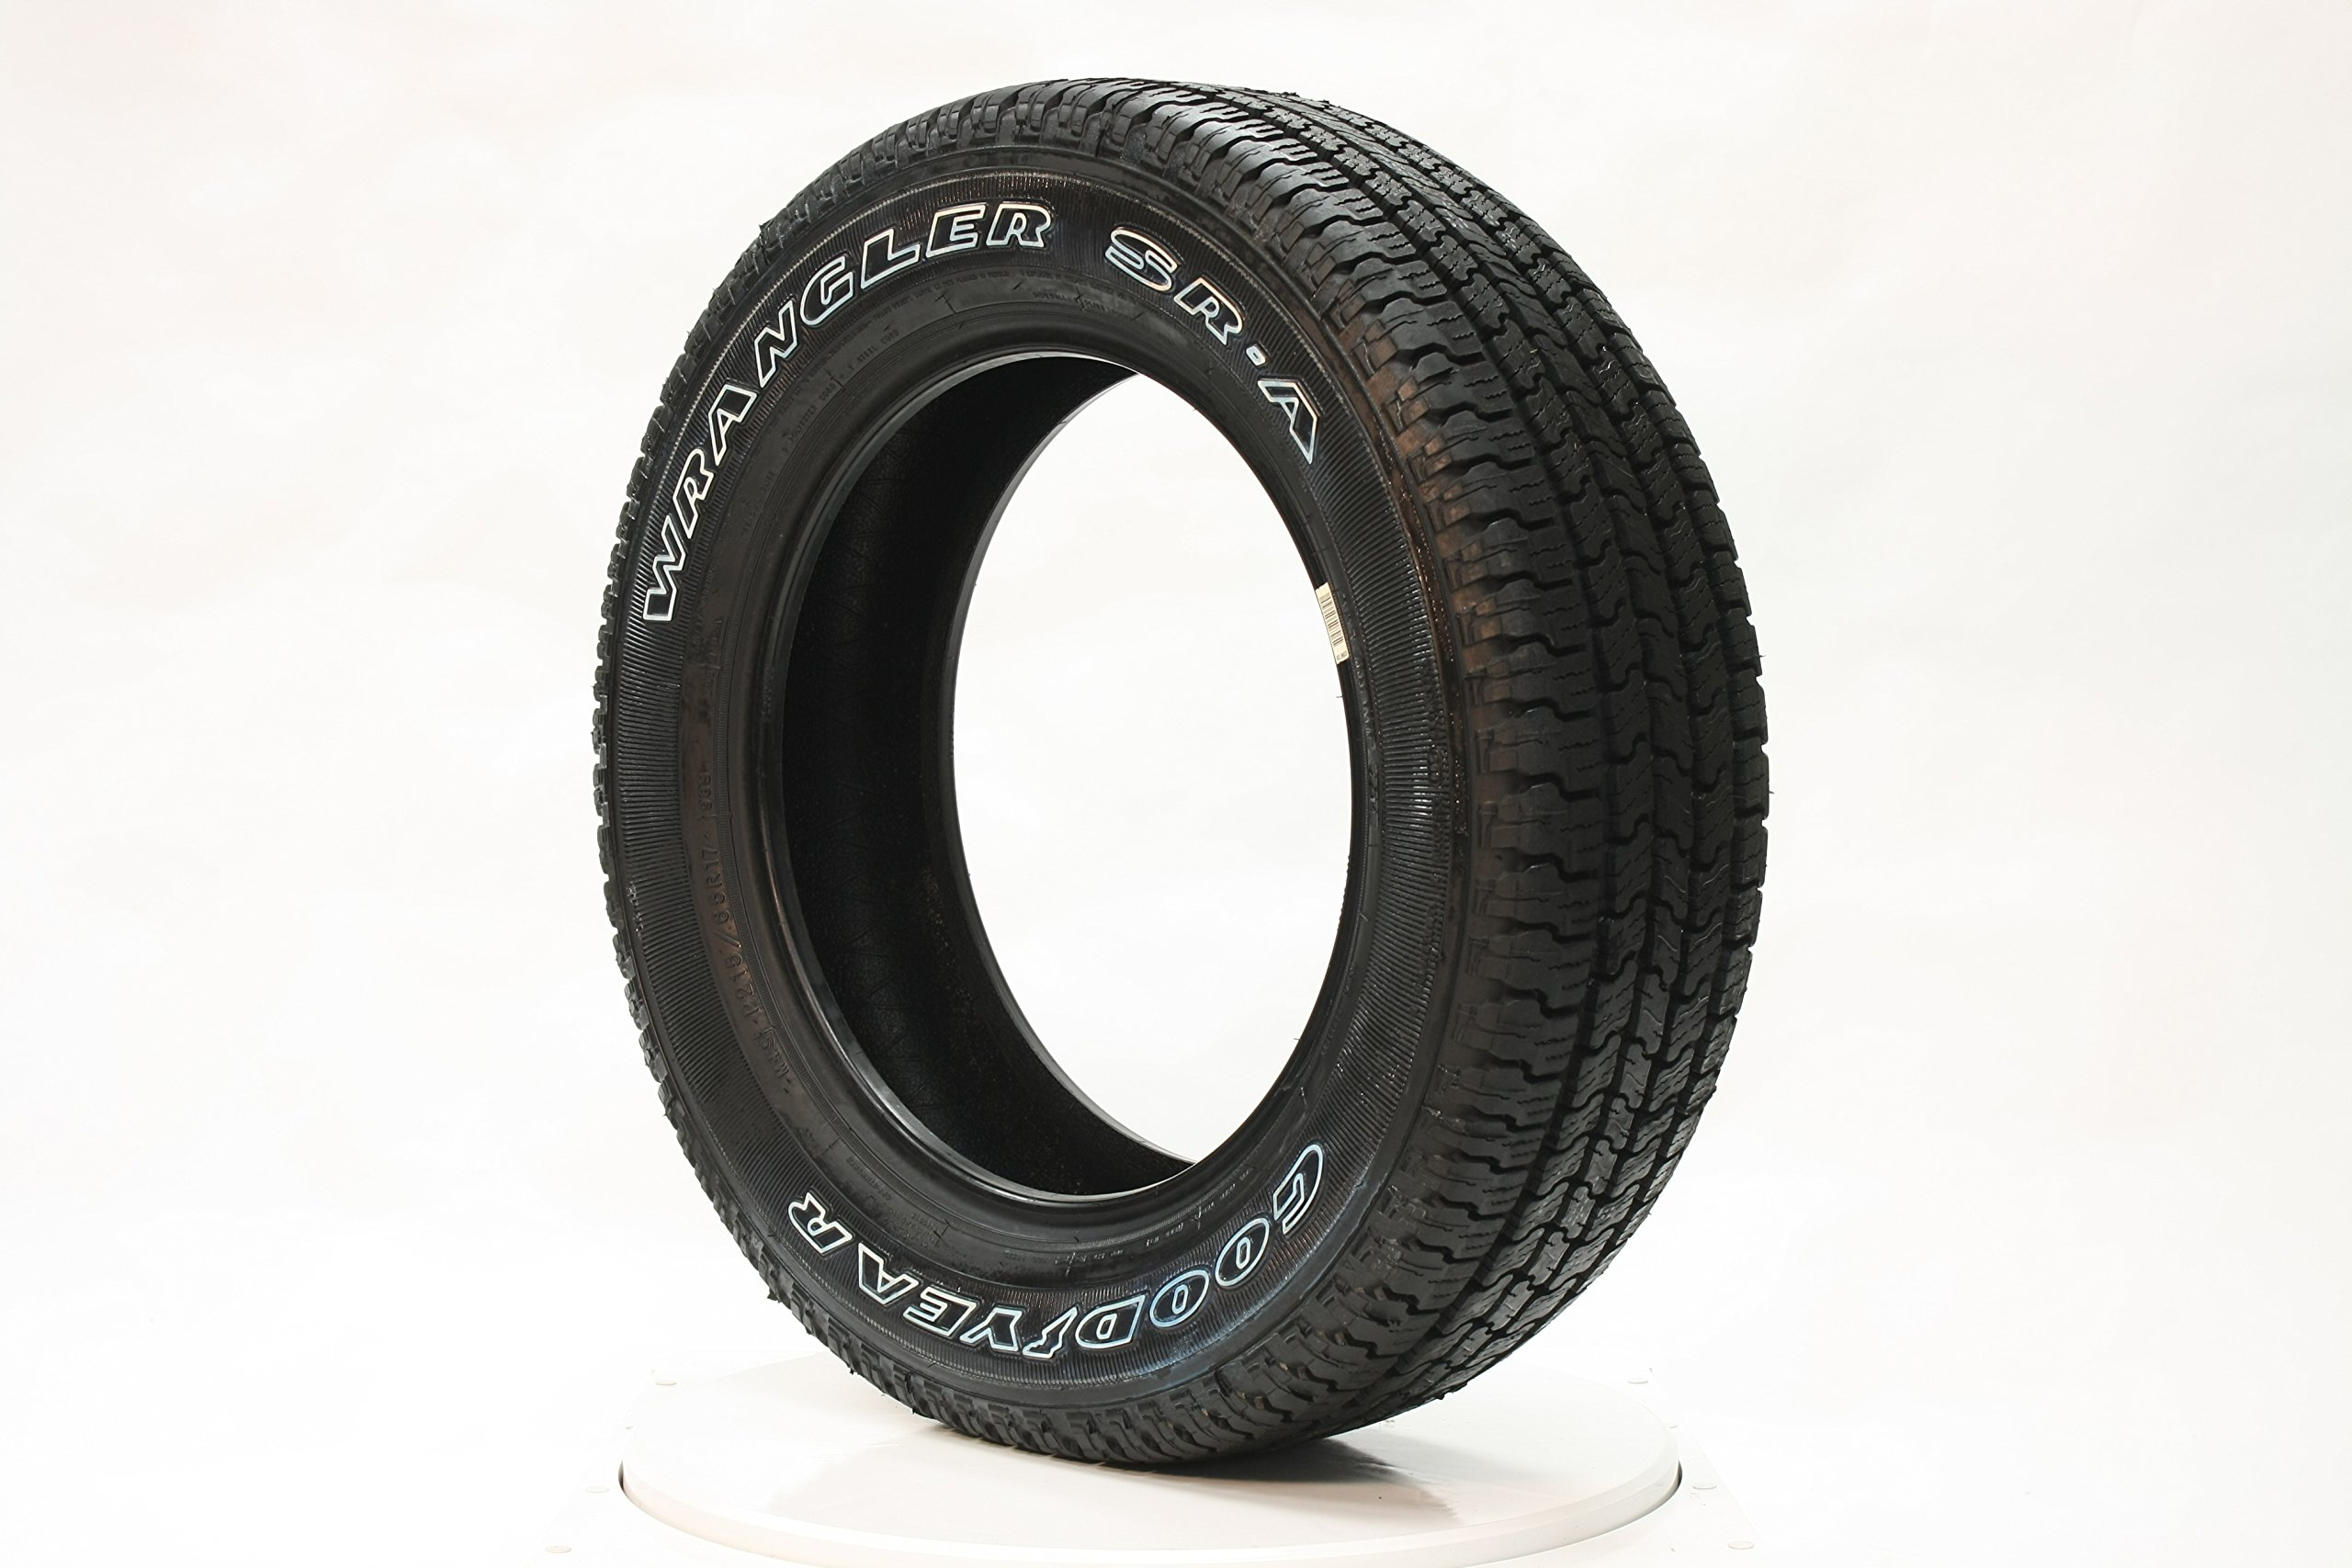 Goodyear Wrangler SR-A Radial Tire - 275/60R20 114S by Goodyear (Image #1)